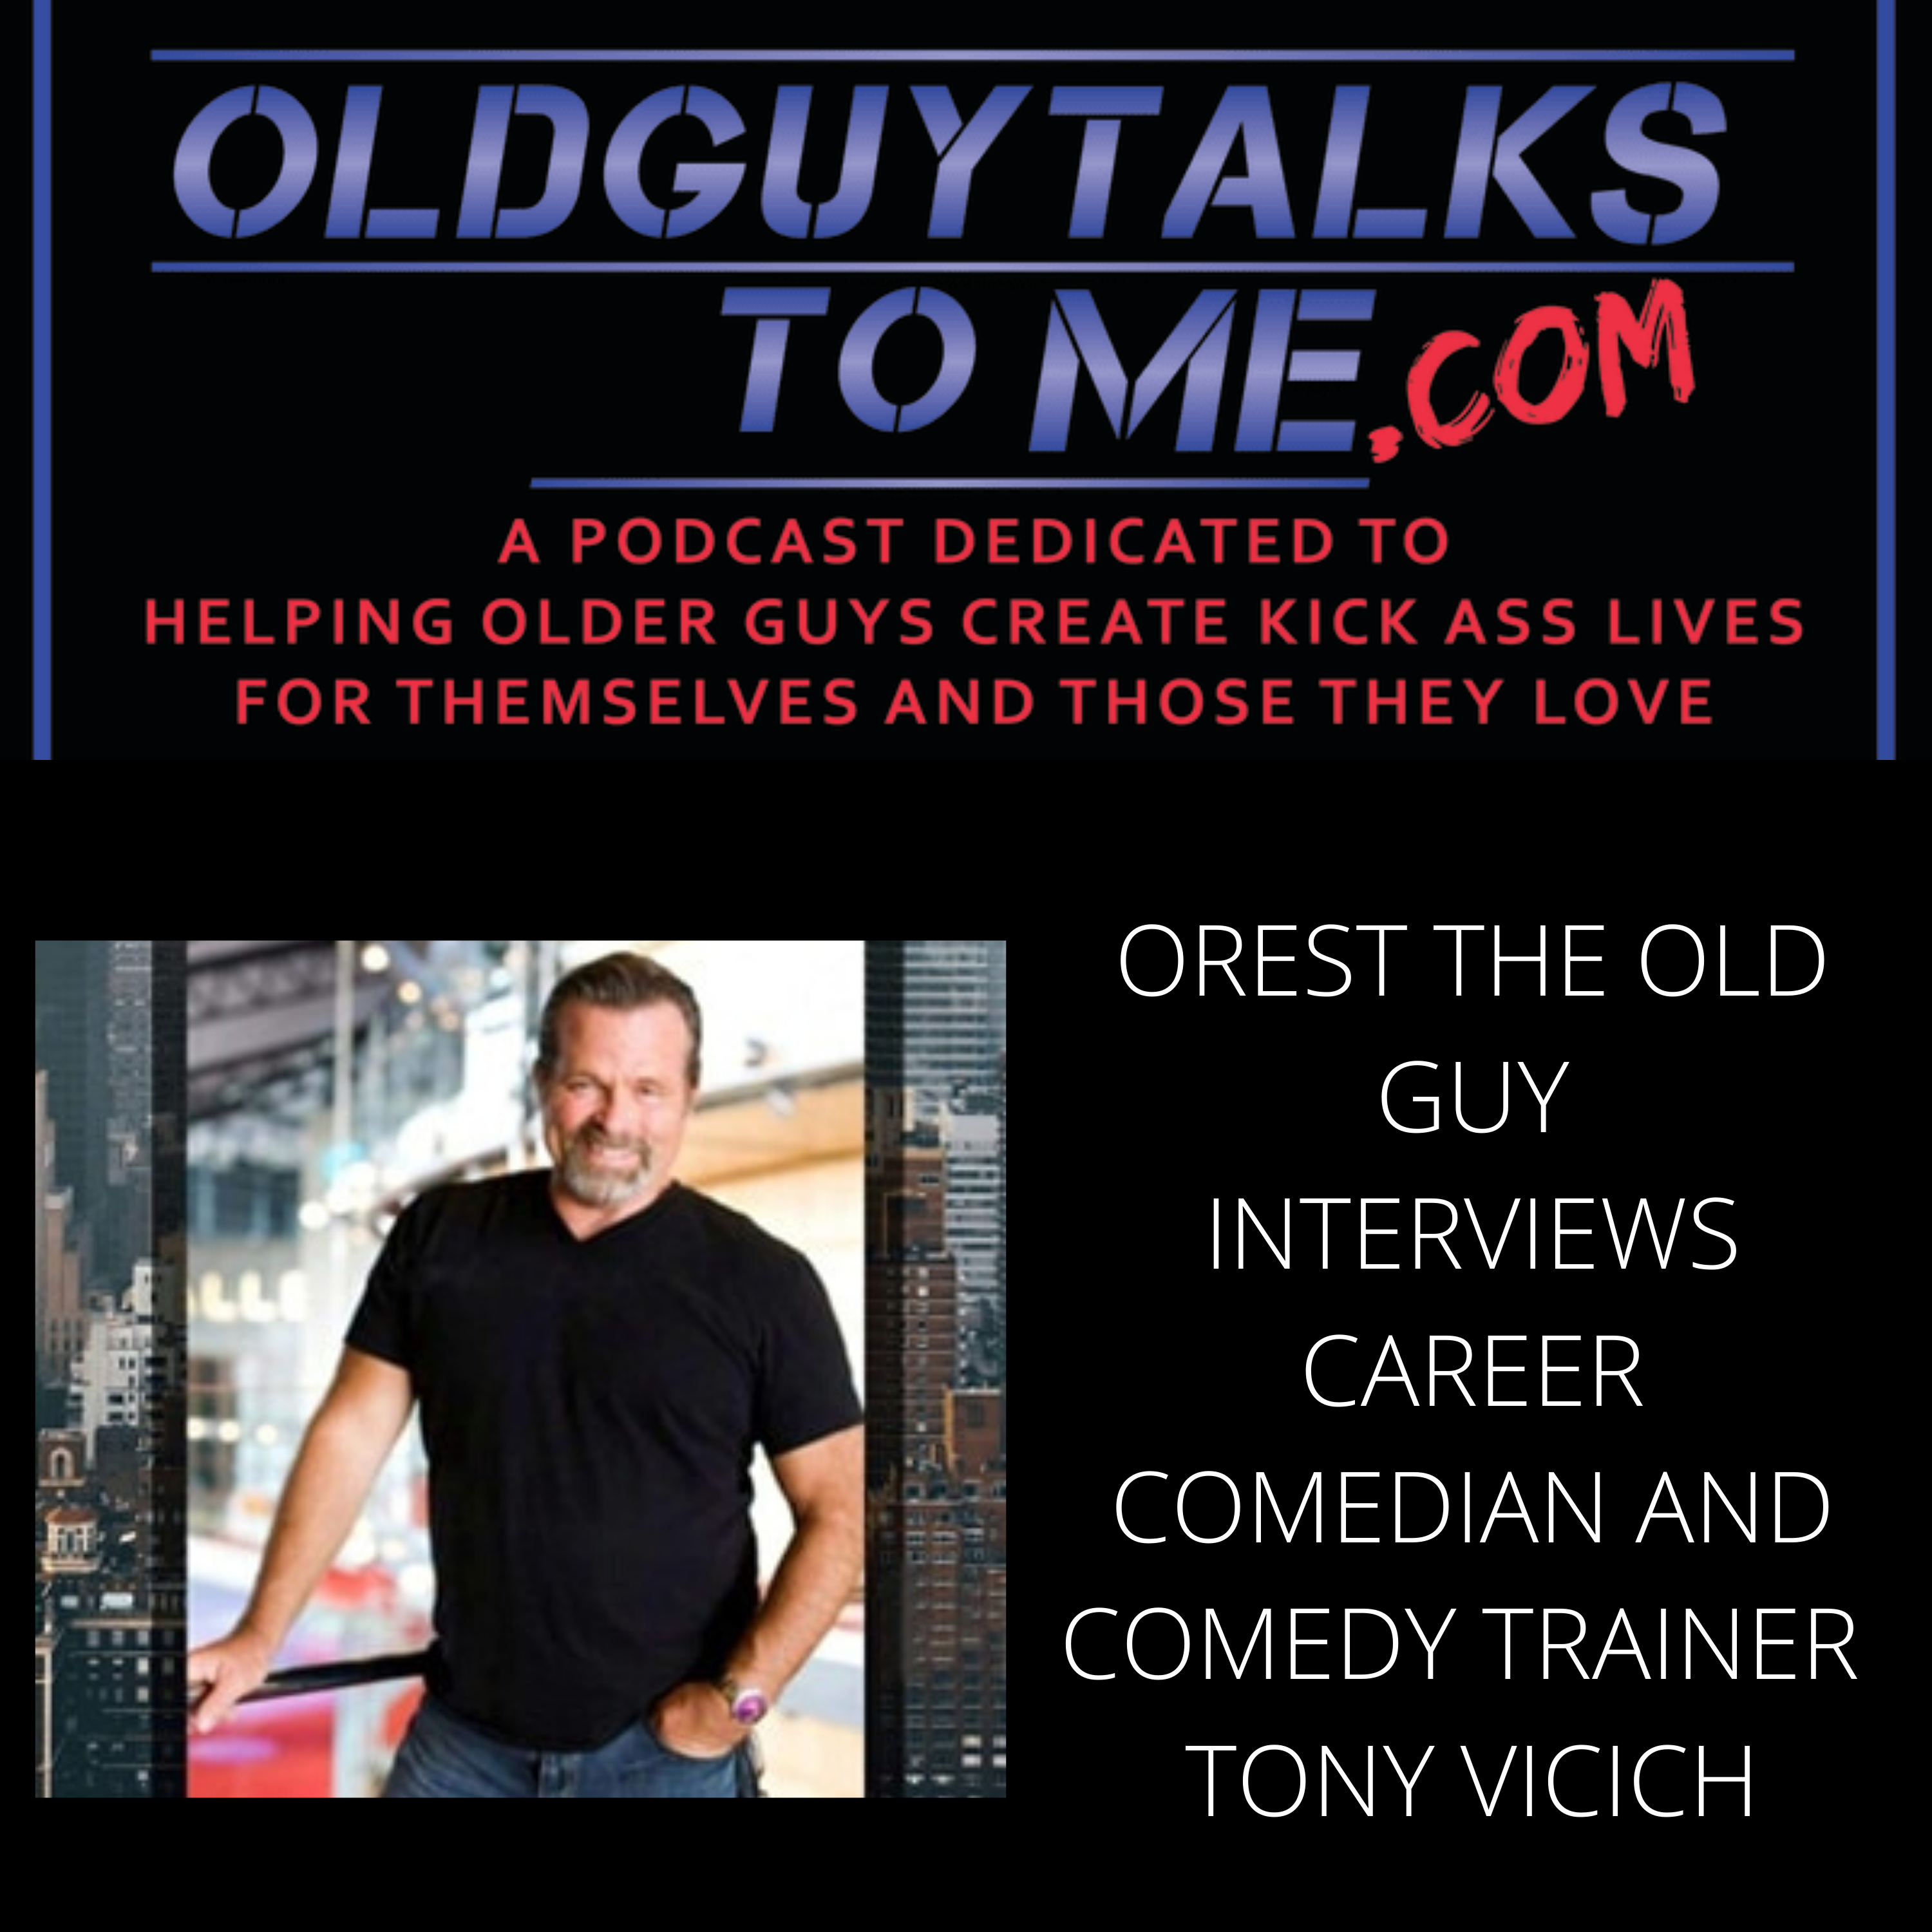 OldGuyTalksToMe - OREST THE OLD GUY INTERVIEWS CAREER COMEDIAN AND COMEDY TRAINER TONY VICICH